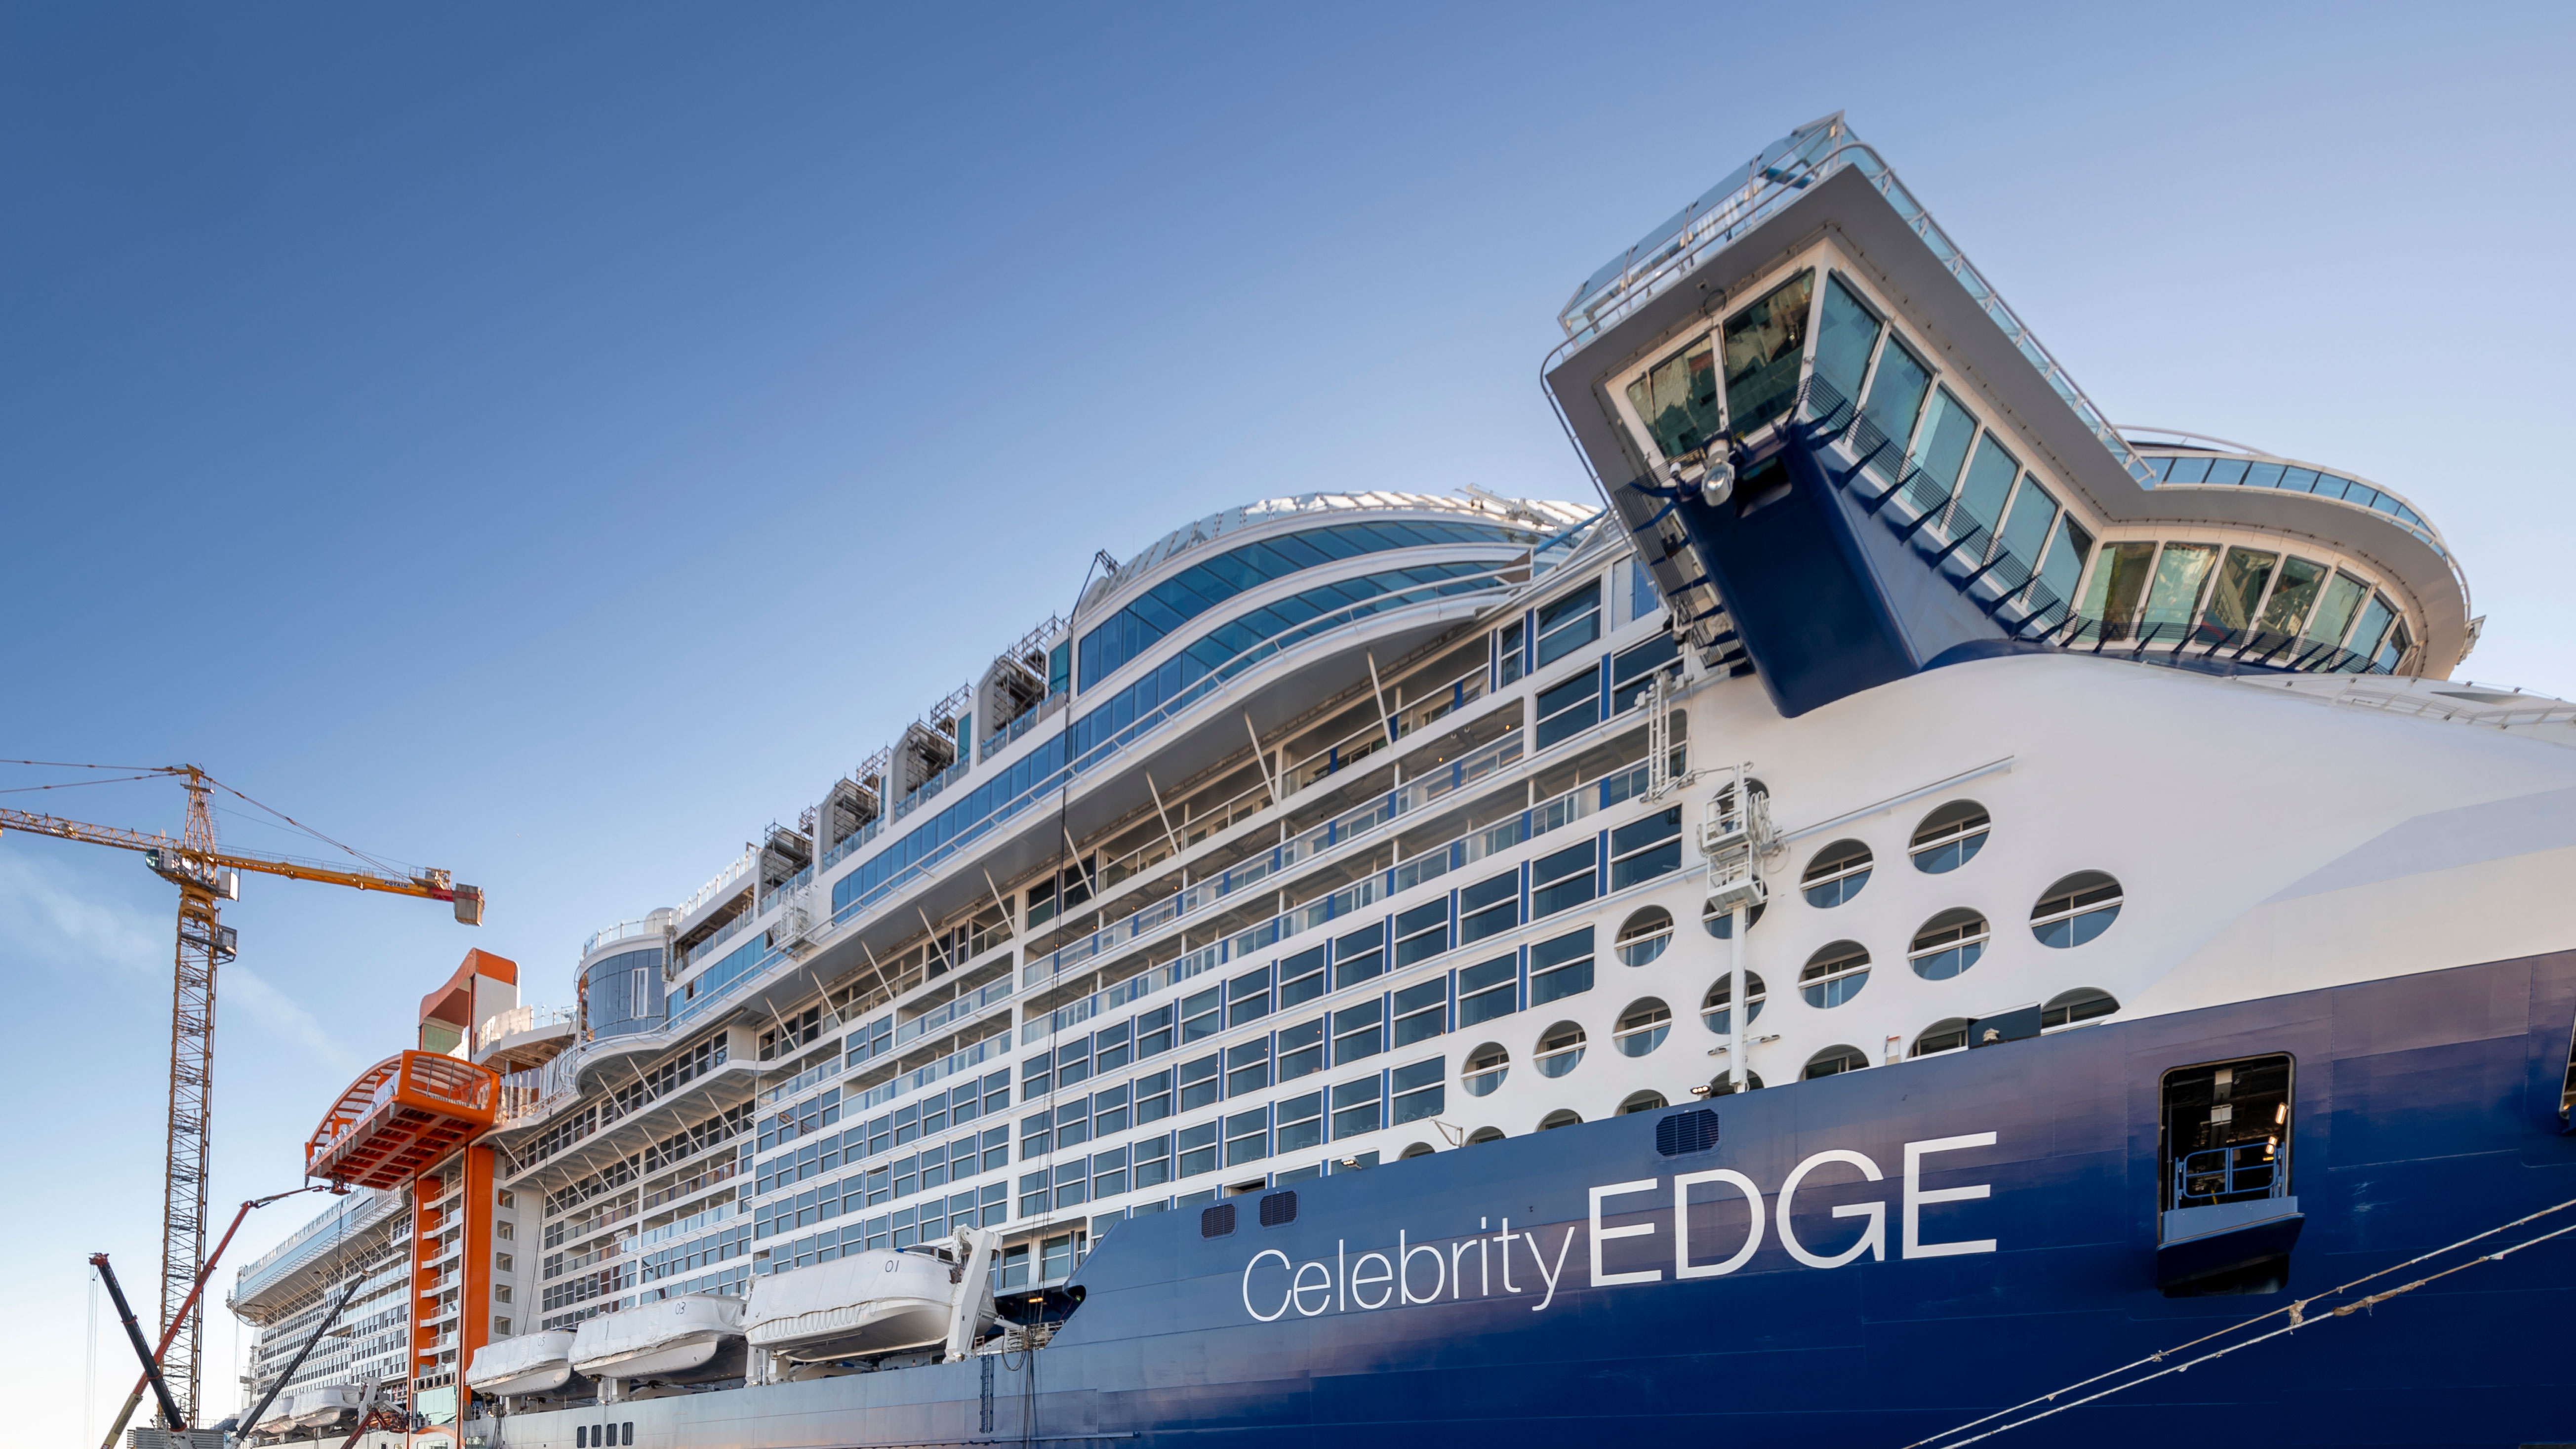 Celebrity Edge Is This The Future Of Cruise Ships Cnn Travel